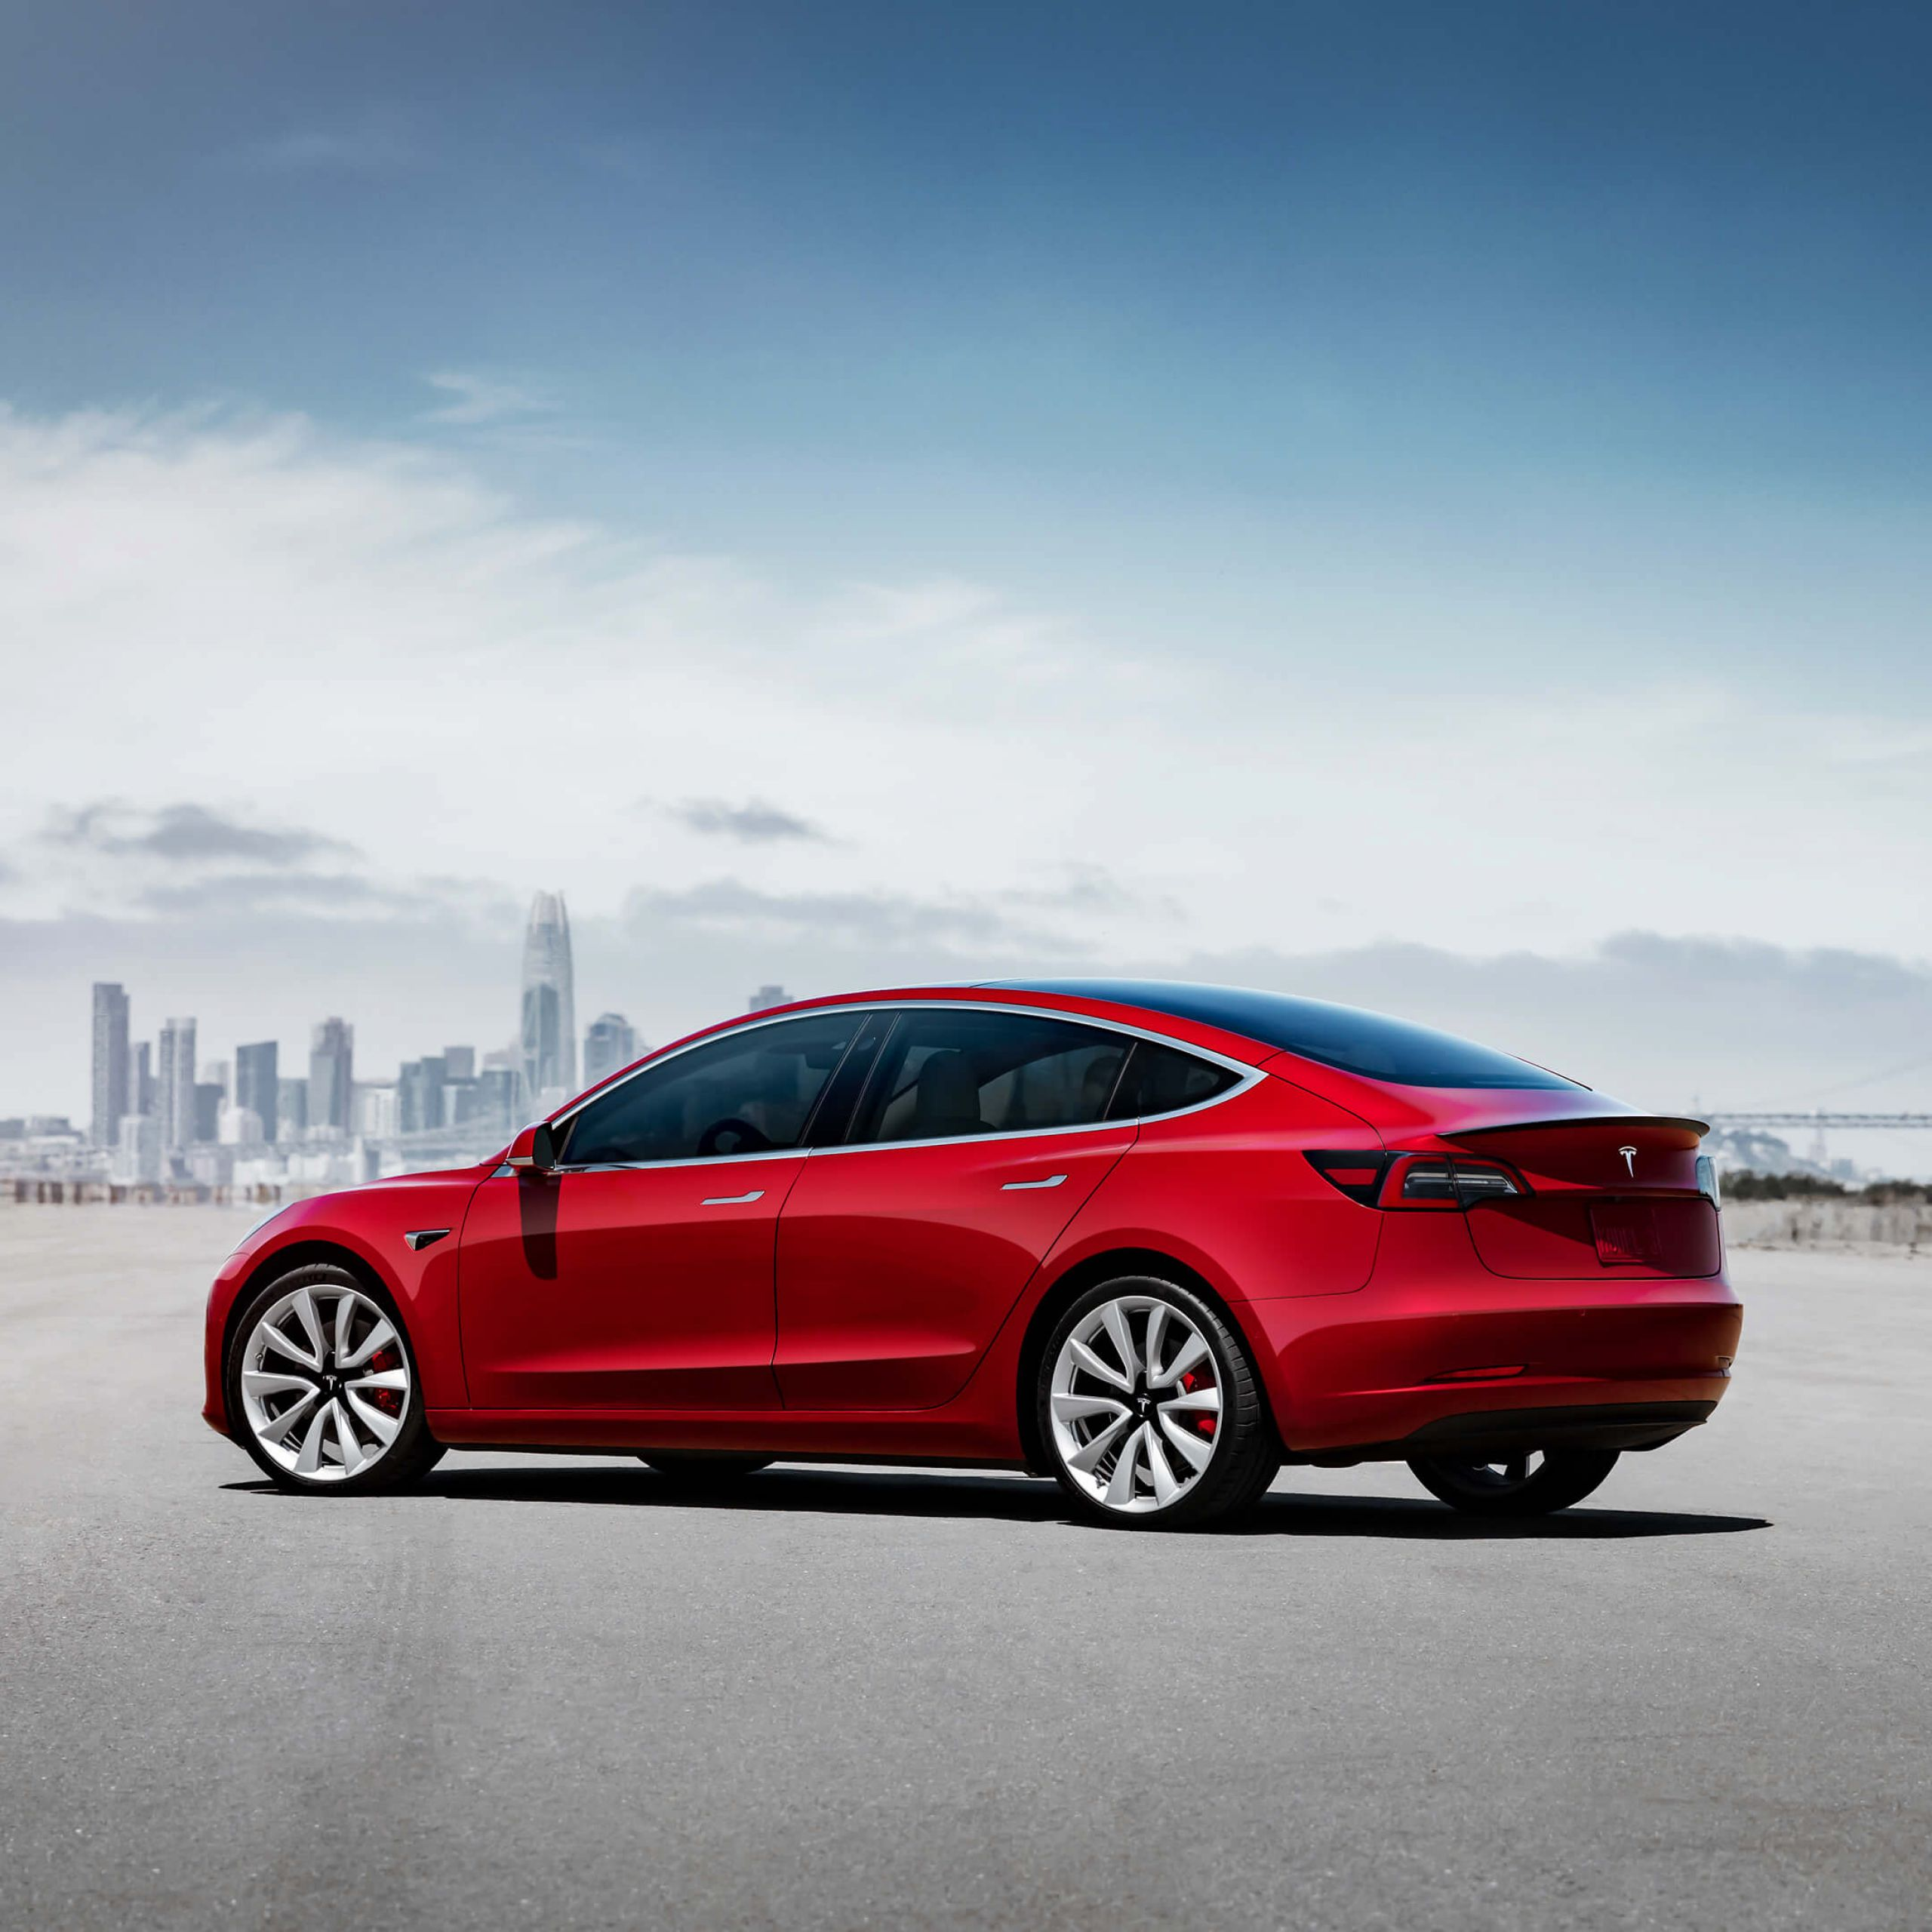 Tesla Free Energy Lovely Electric Cars is It Time to Get E Discover the Pros and